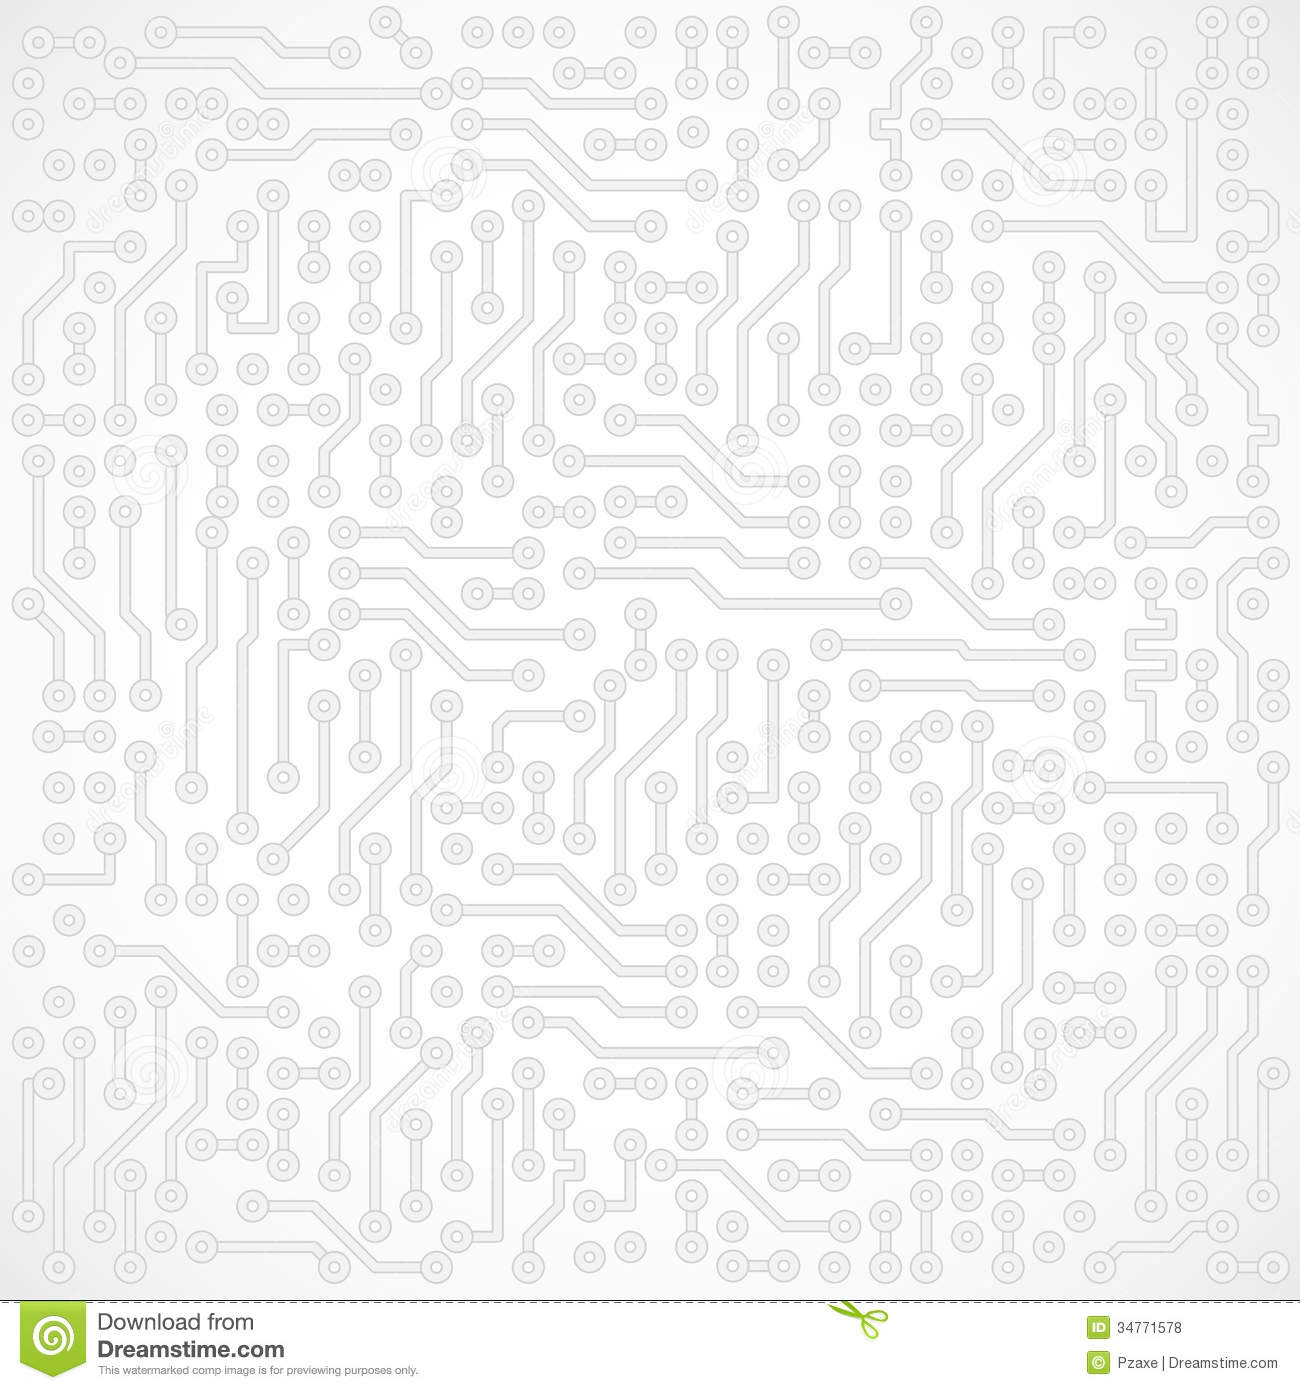 Light Gray Square Abstract Vector Electronic Stock Vector